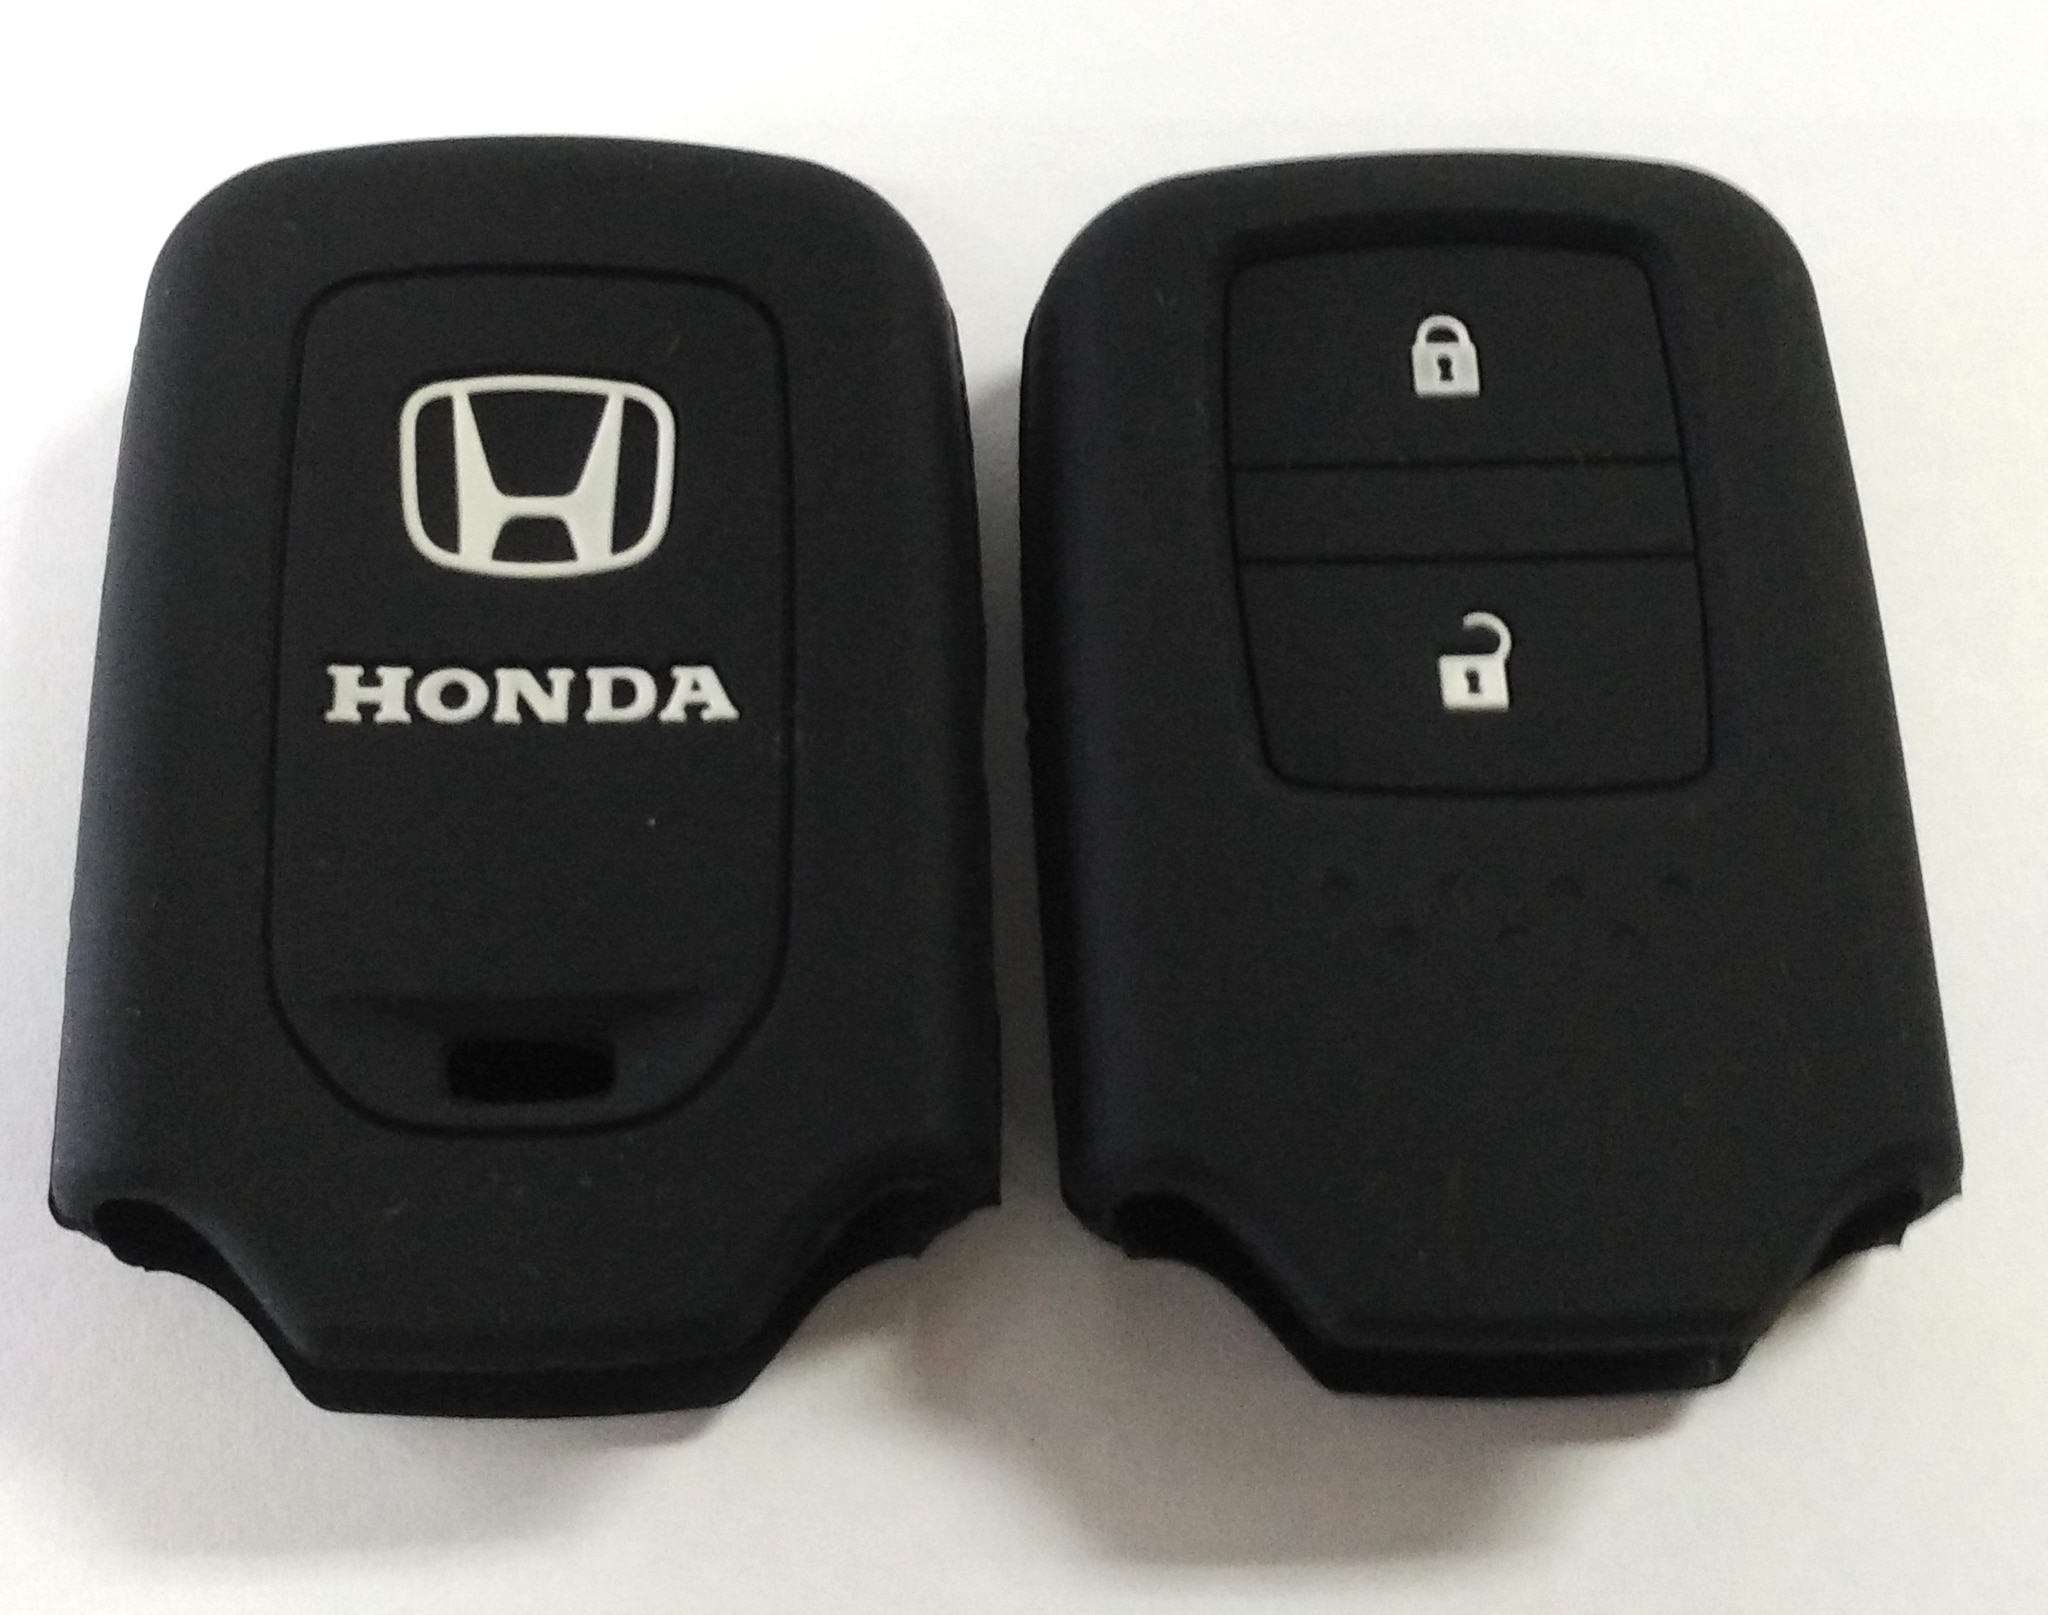 Kondom Remote Silikon Kunci Keyshirt HONDA HR-V All New Jazz Hitam